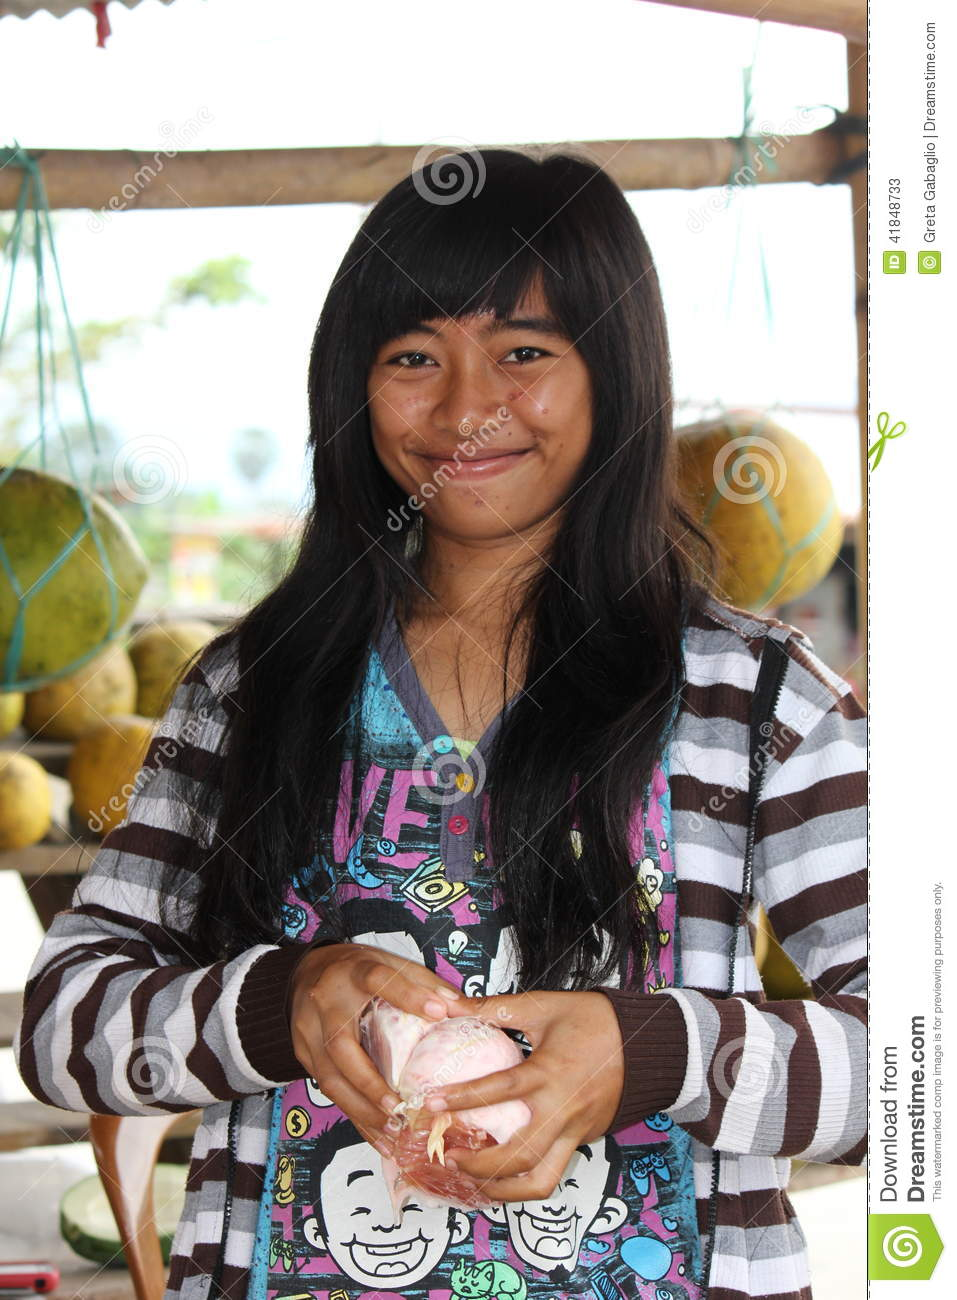 ... teen girl ins selling fruit at a litthe market along the street